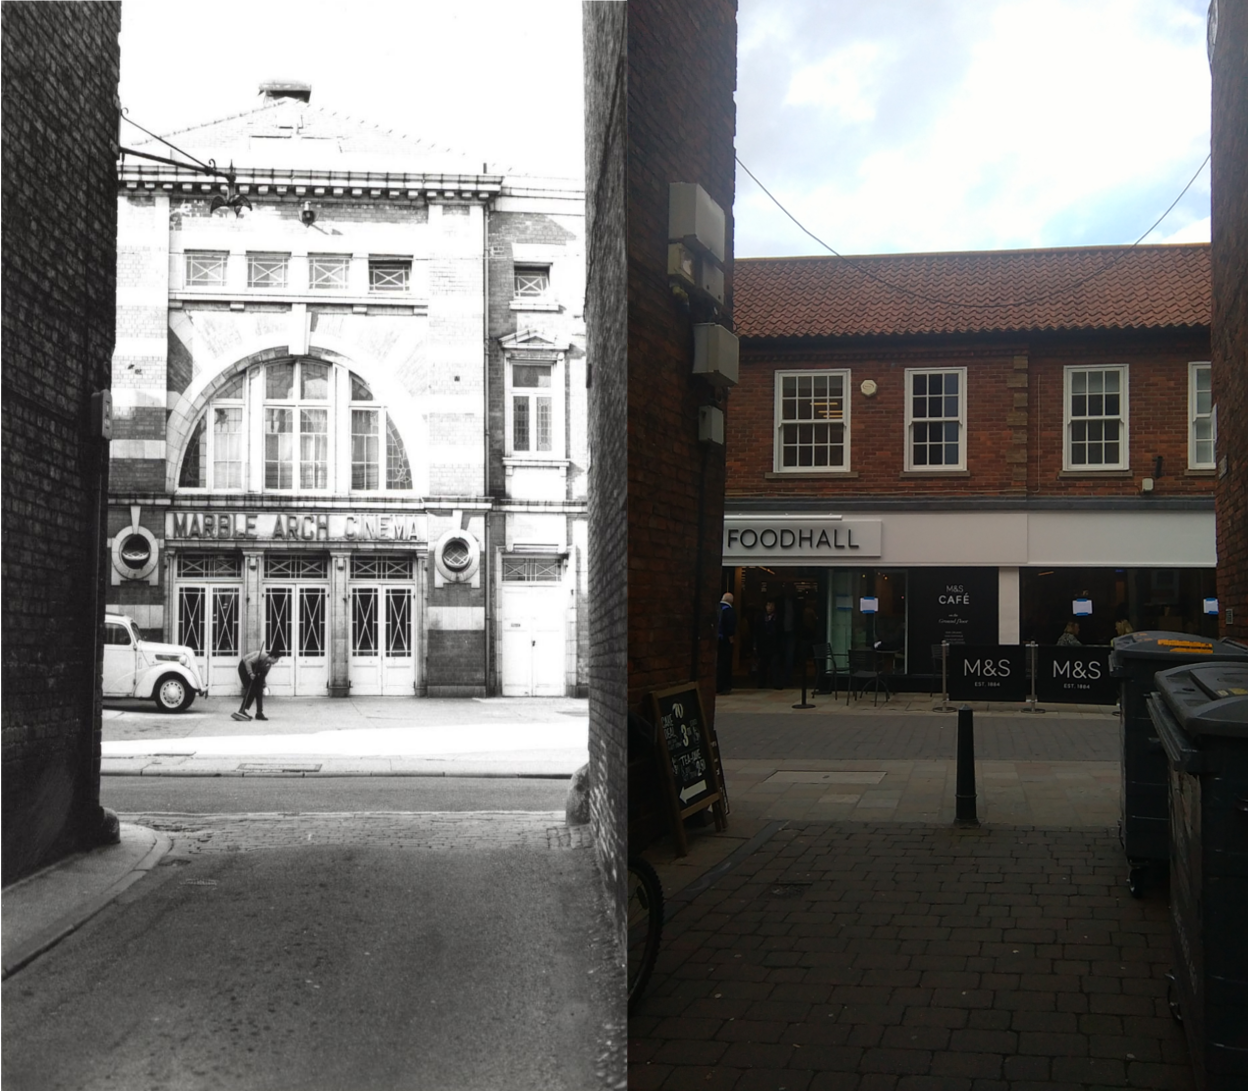 Marble Arch Cinema, Beverley - then & now